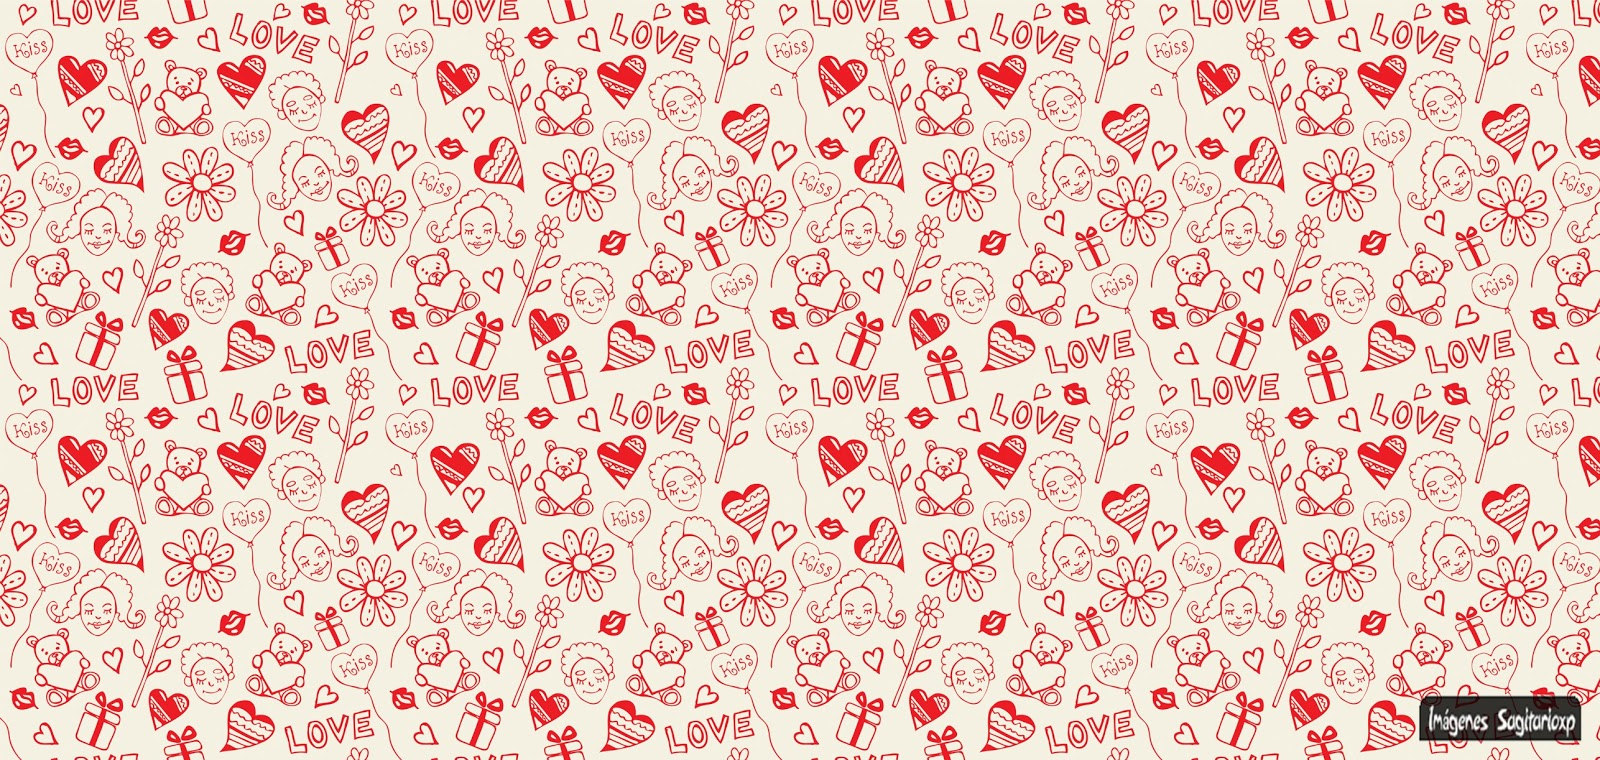 Love Textura Wallpaper Imagenes y Fondos